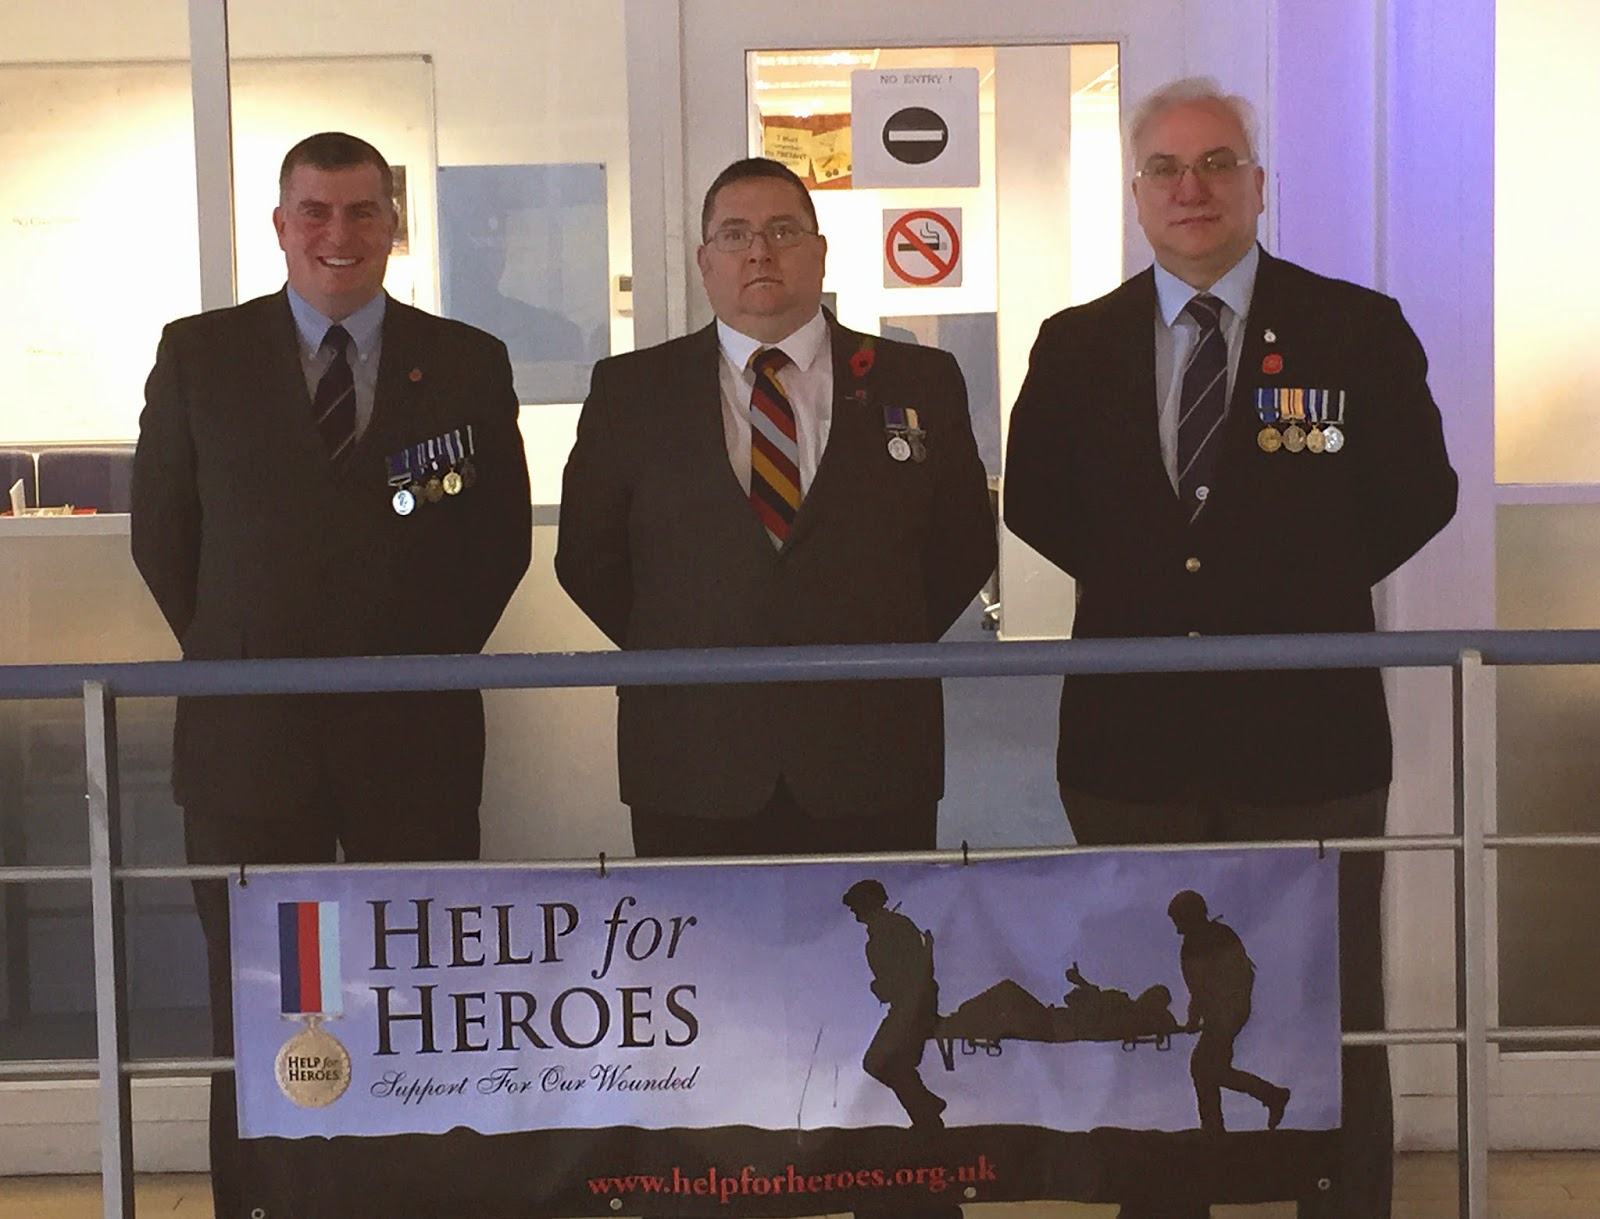 WW1 Centerprise Staff Wear Medals for Centennial in the Atrium, Basingstoke